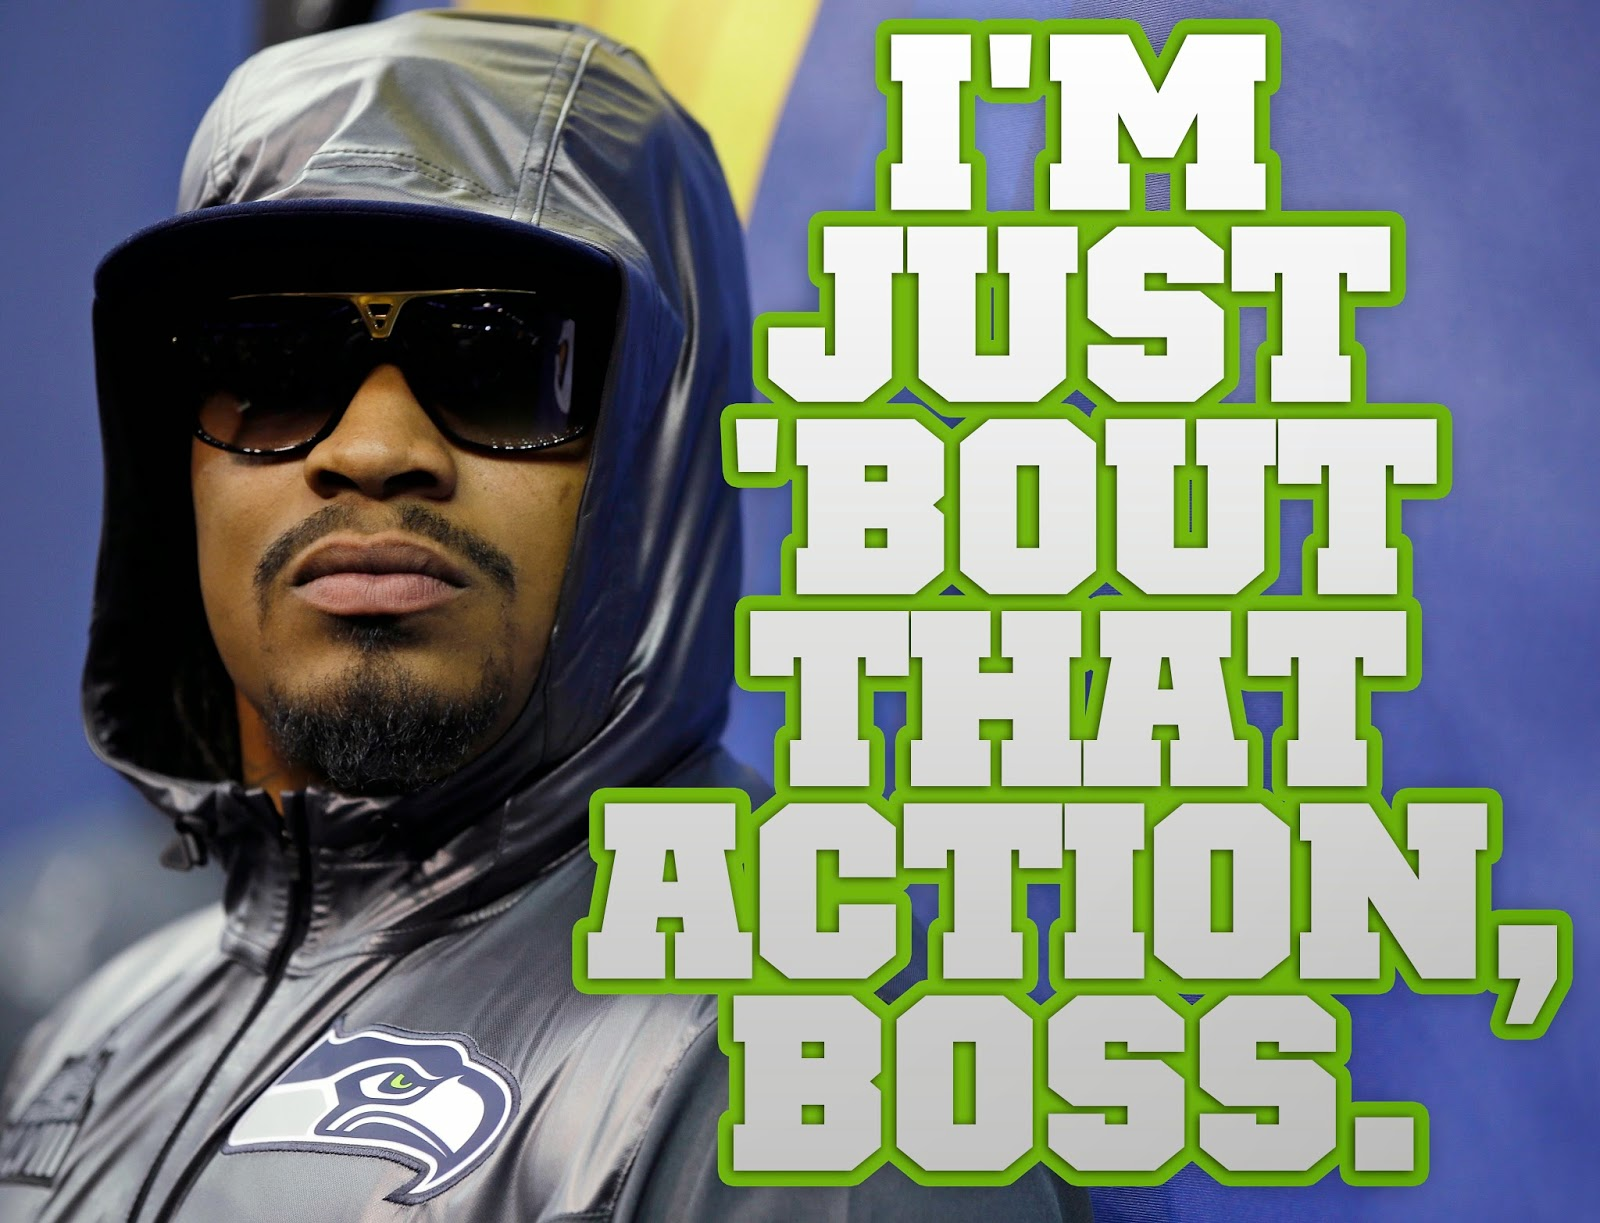 bout action boss